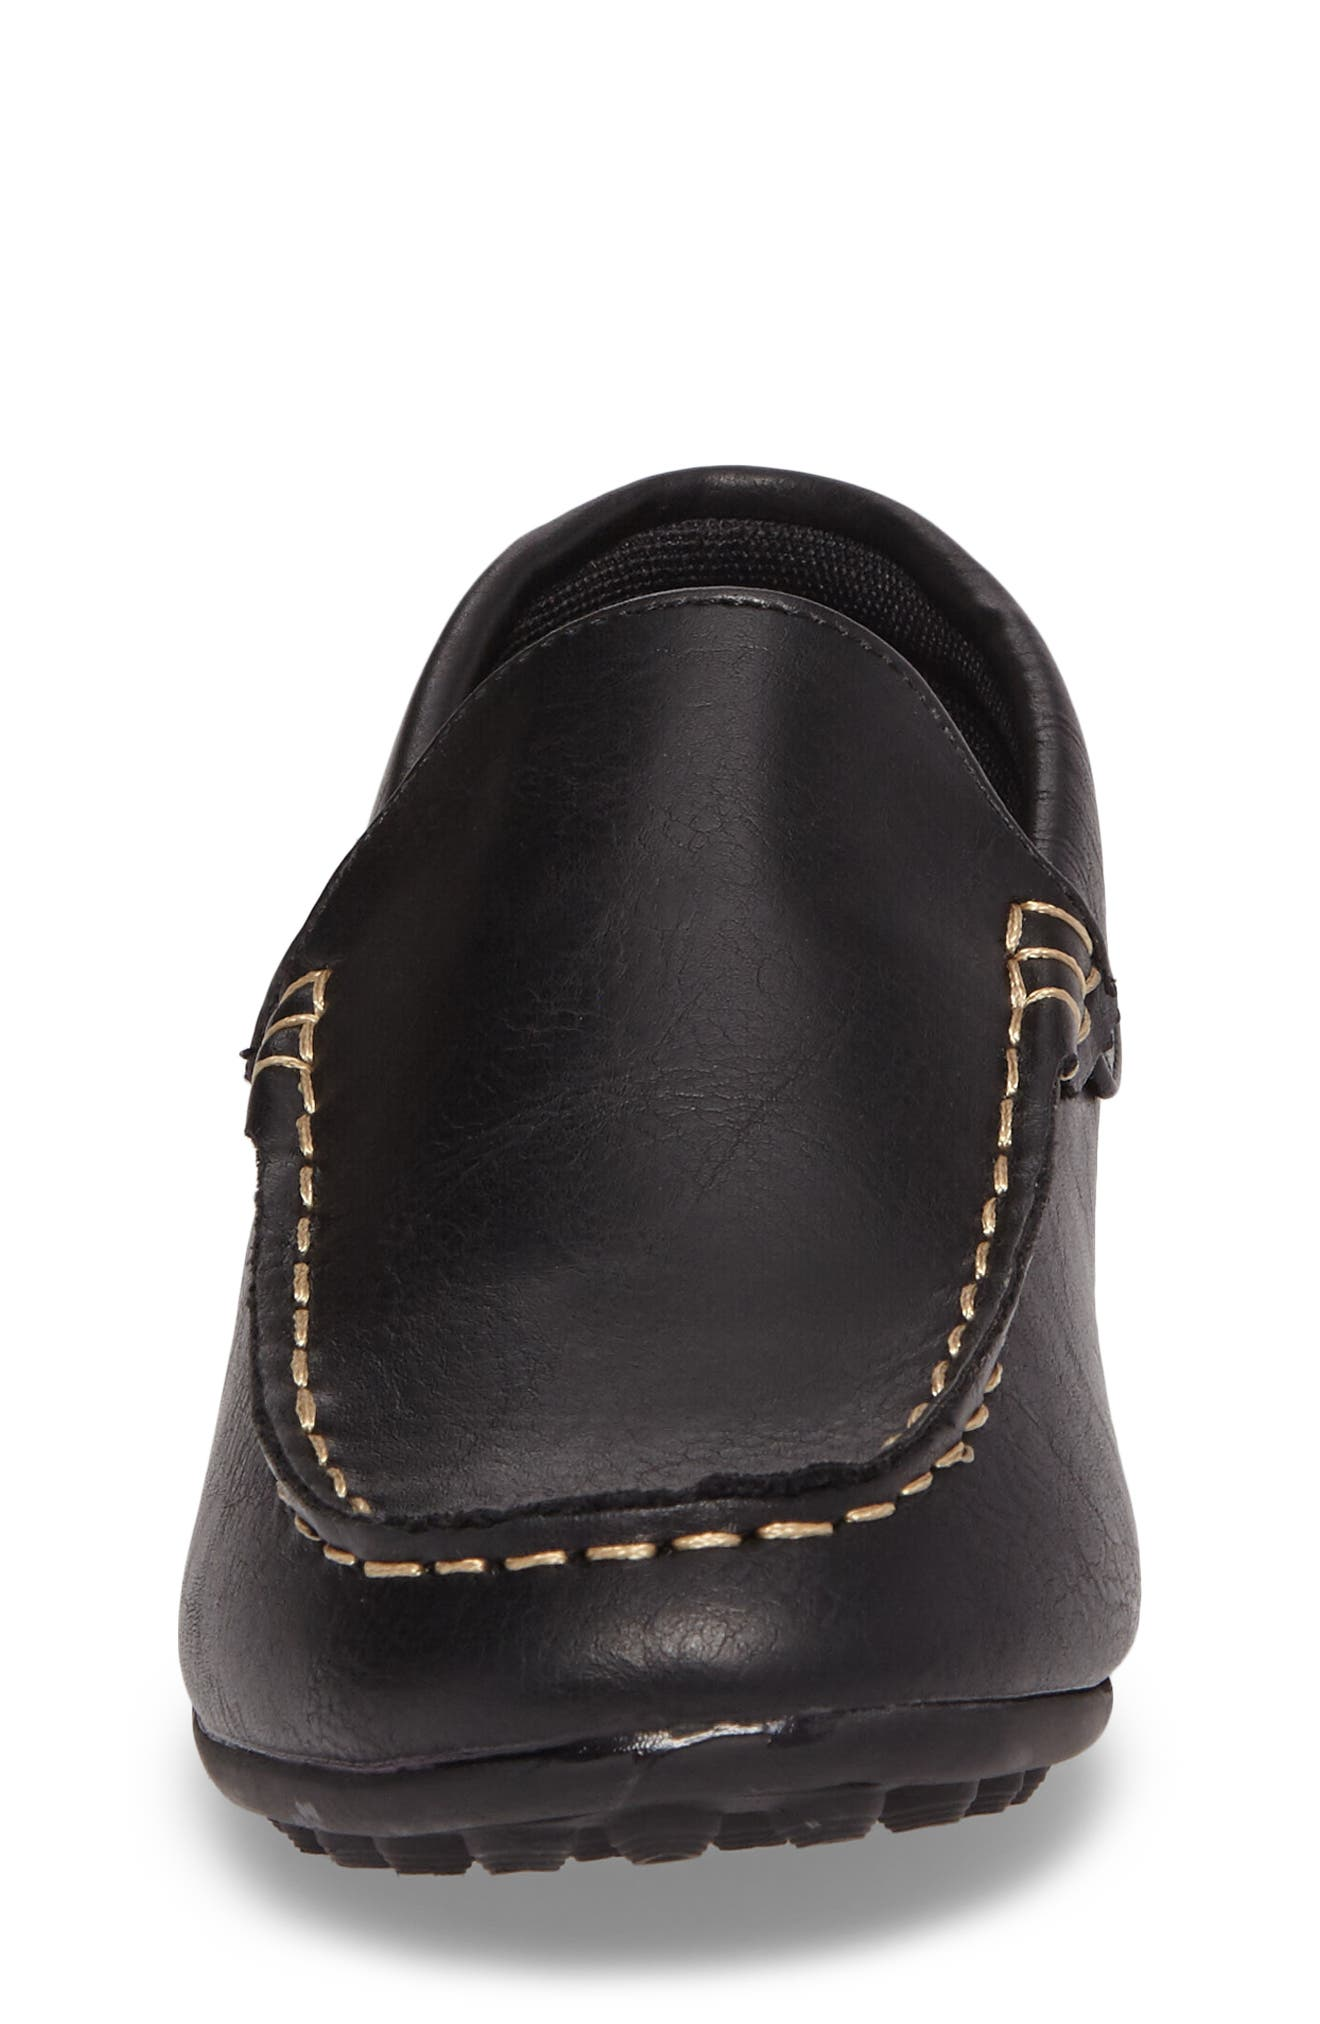 Compton Driving Loafer,                             Alternate thumbnail 4, color,                             BLACK